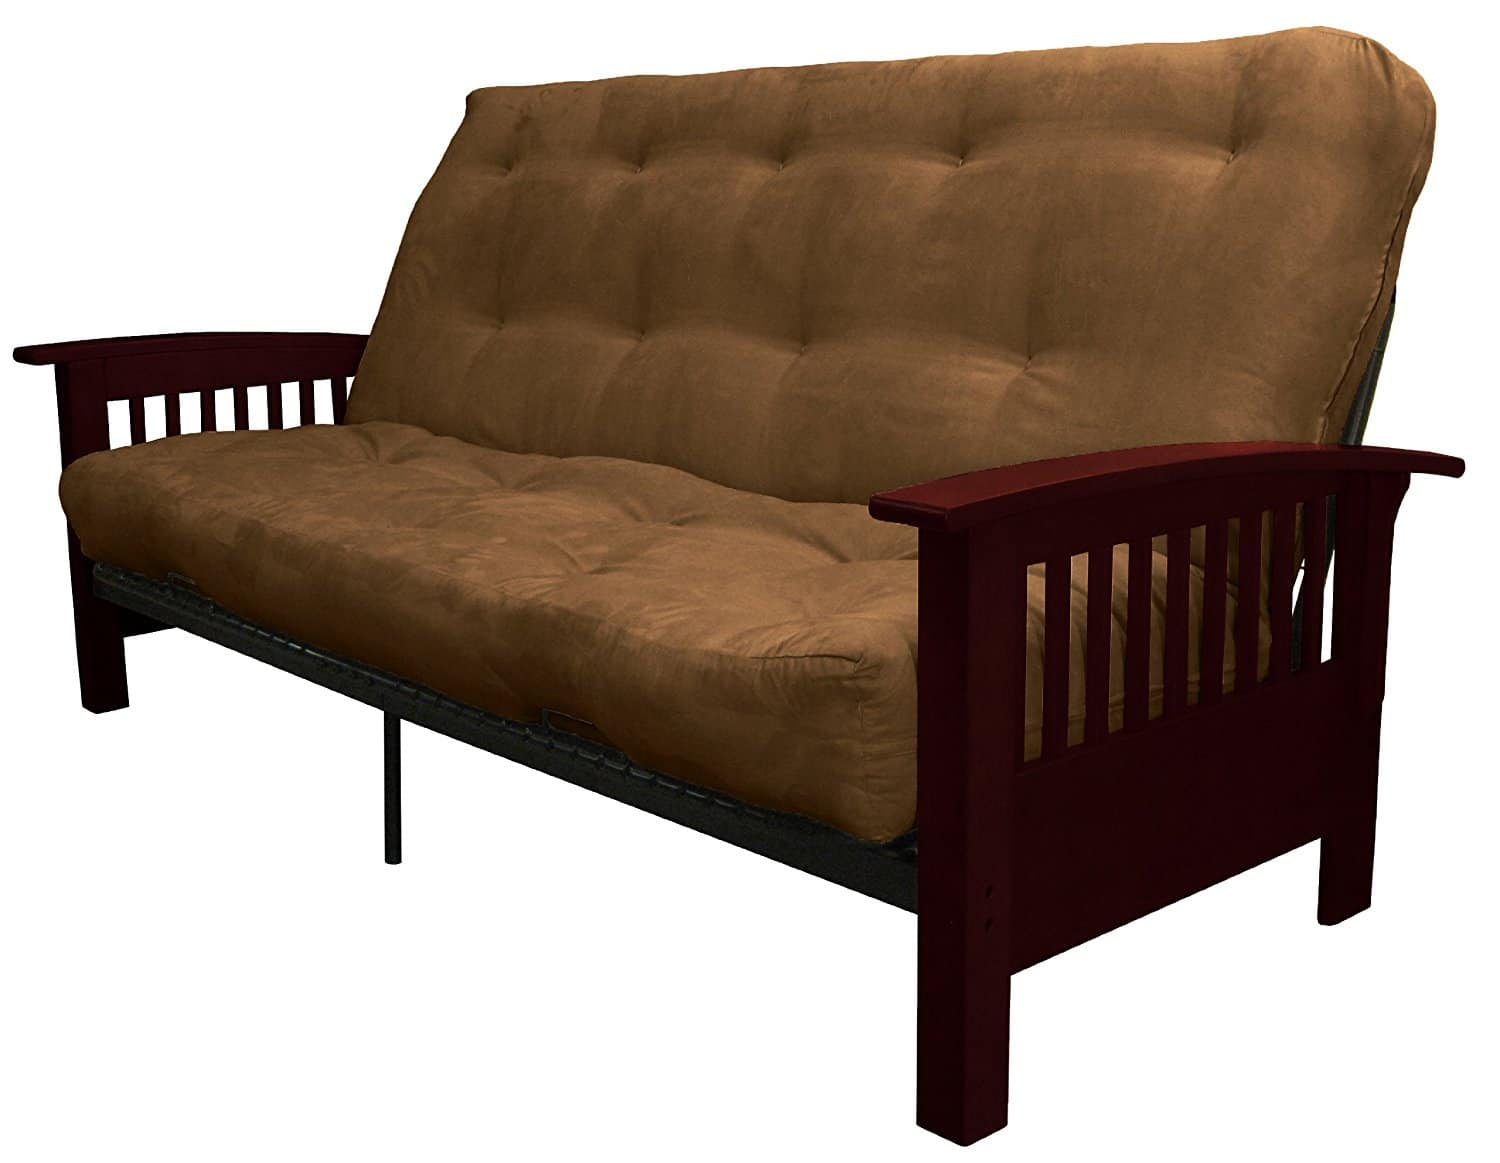 Cons. This sleeper sofa ...